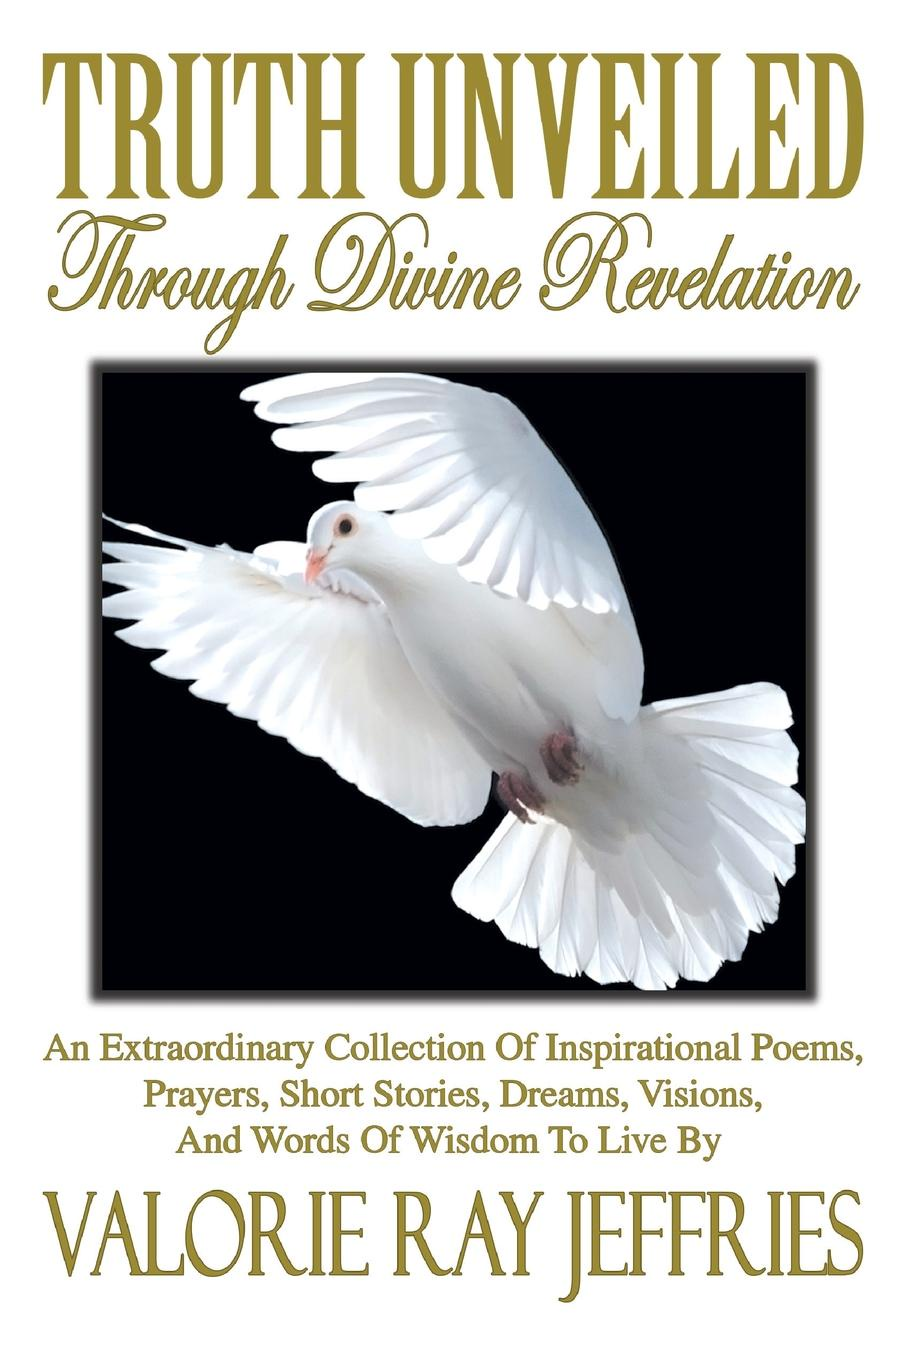 Valorie Ray Jeffries Truth Unveiled Through Divine Revelation. An Extraordinary Collection of Inspirational Poems,Prayers, Short Stories, Dreams,Visions, And Words of Wisdom to Live by brittany tempel pretty bird a collection of poems and short stories